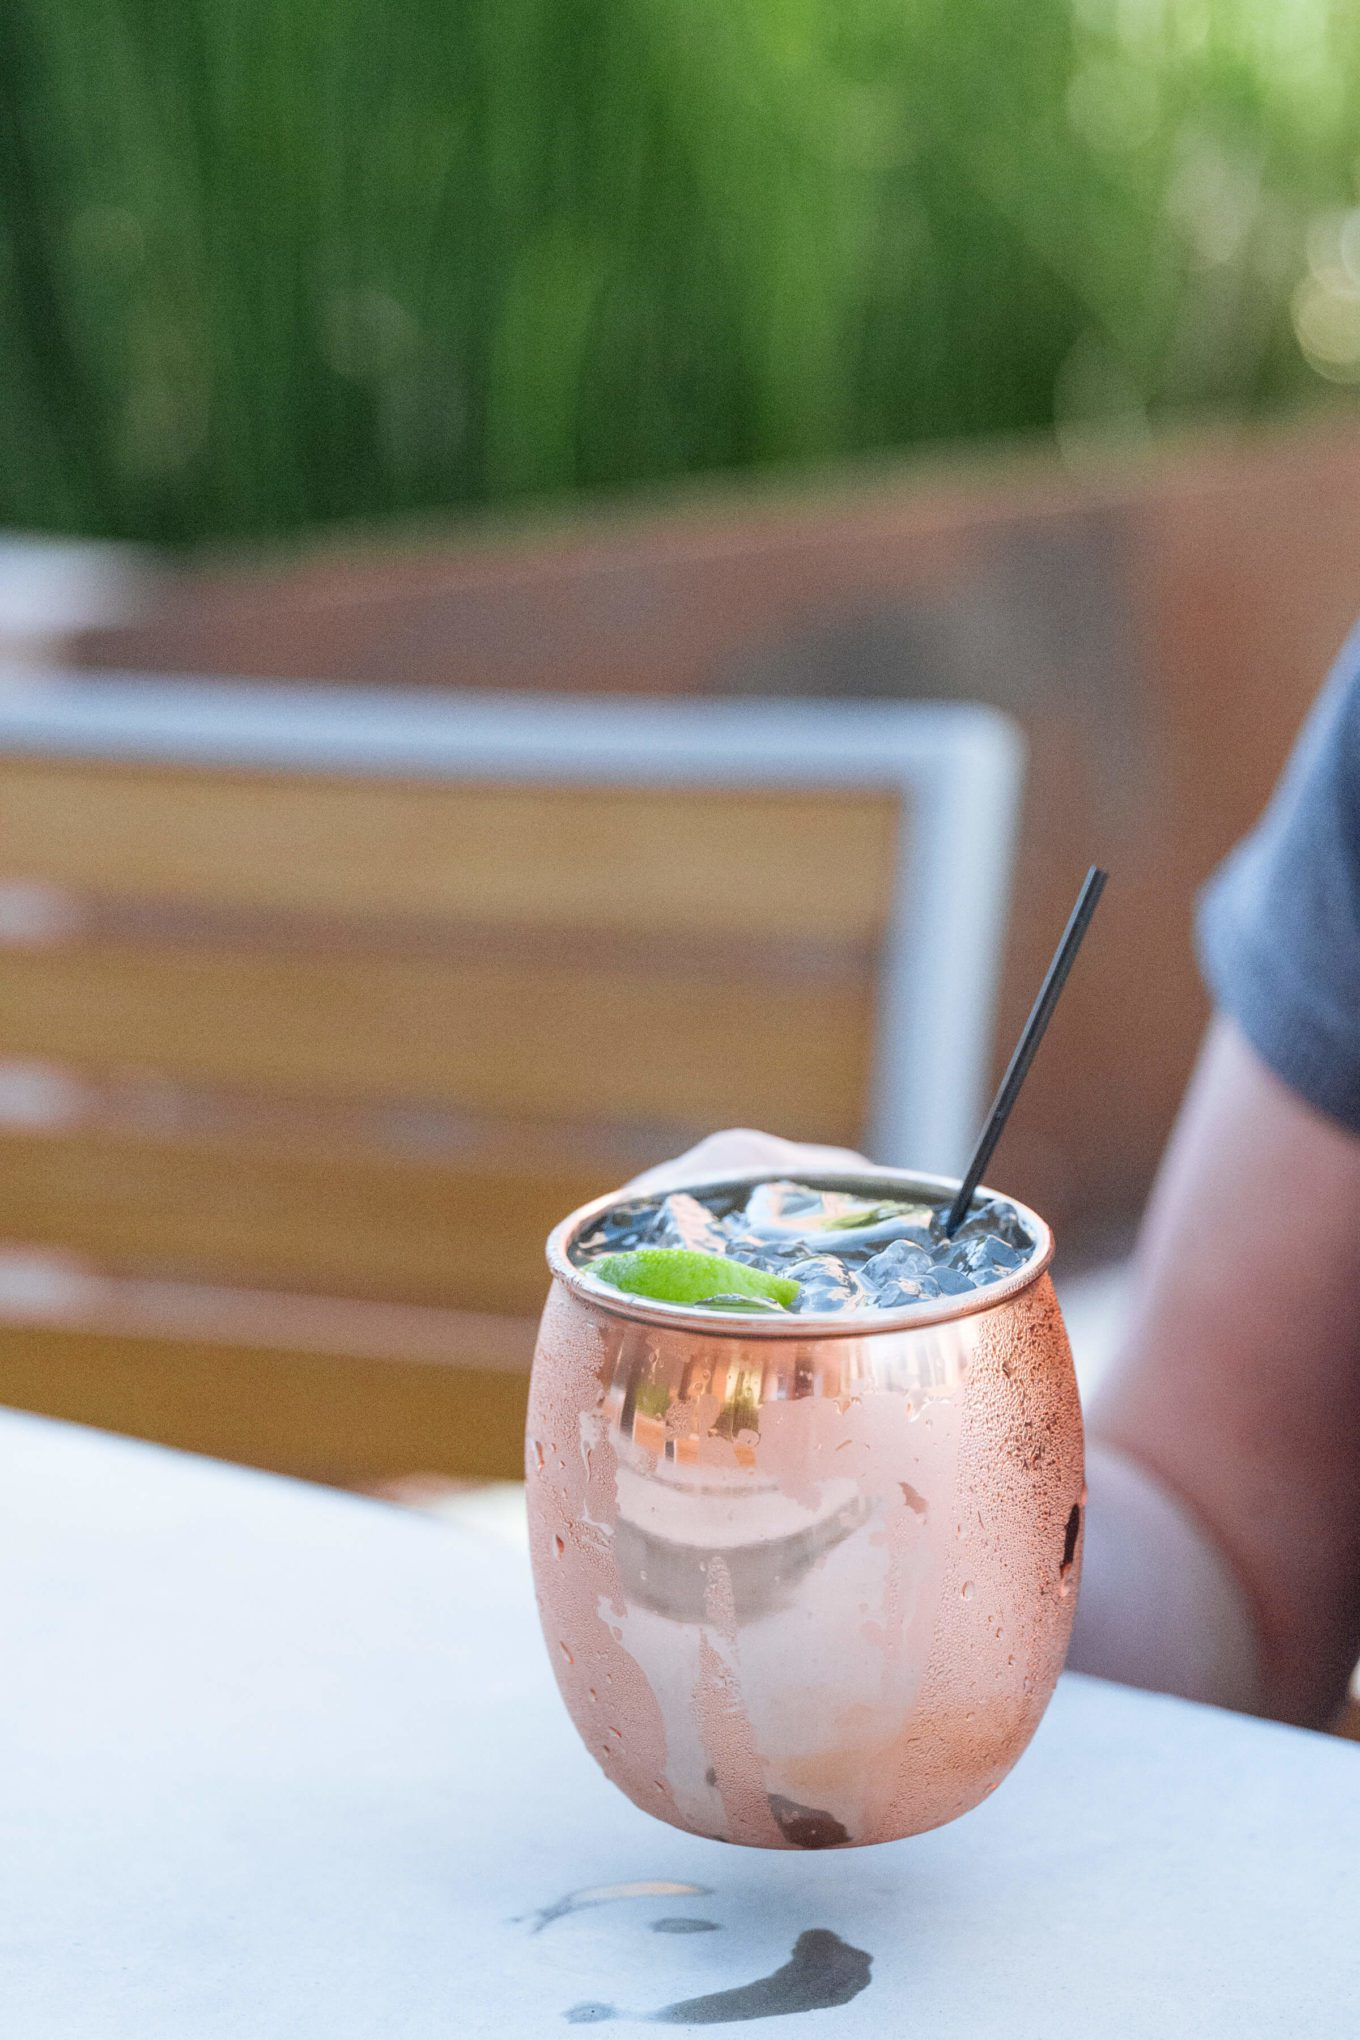 Drinking a green chili moscow mule cocktail